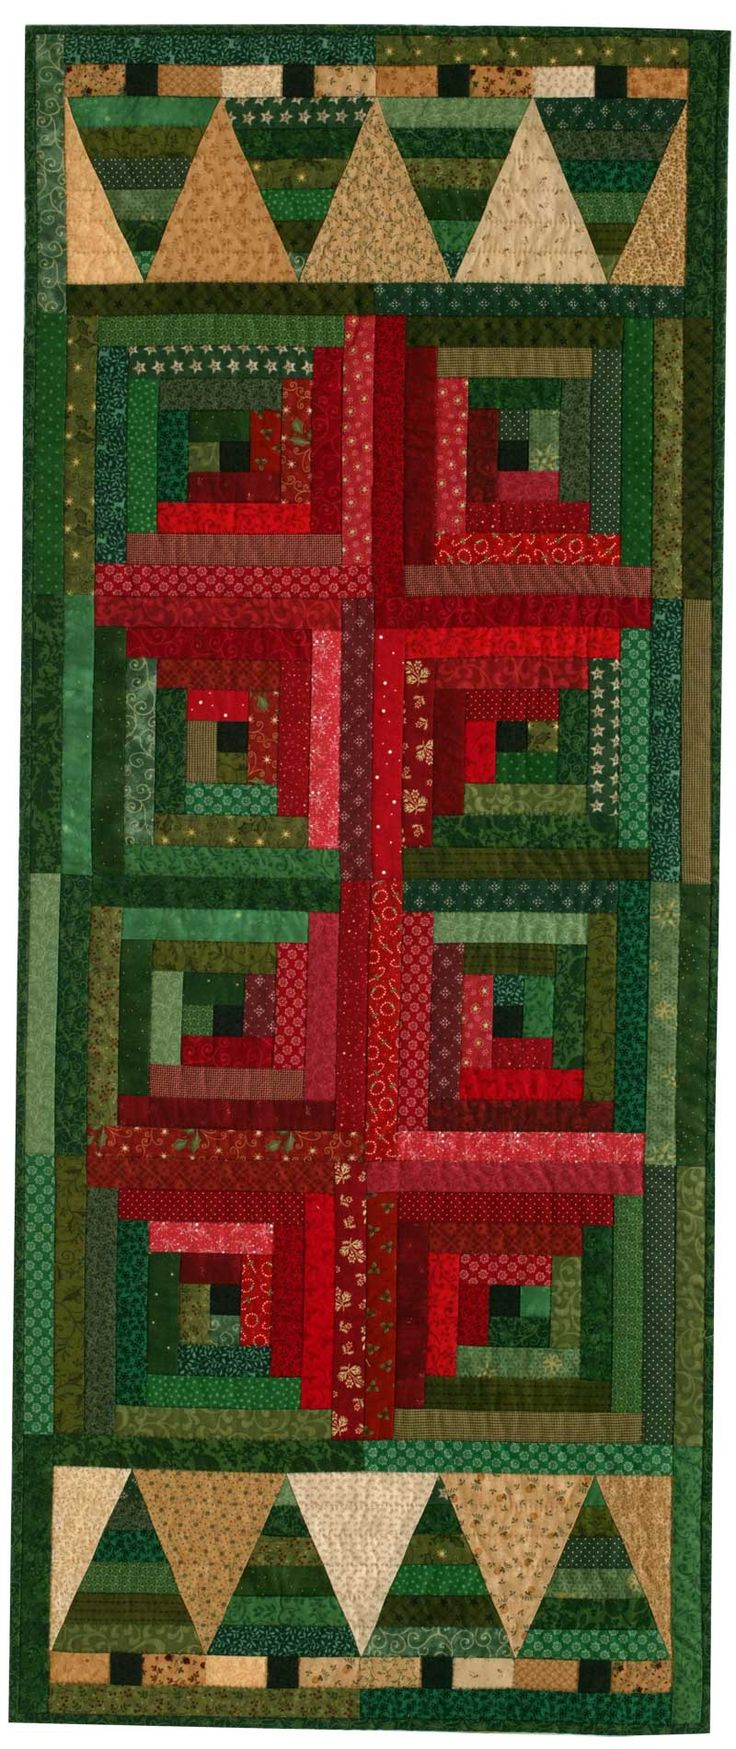 Free Download Table Runner Patterns | Free Christmas Table Runner Pattern: Christmas in the Cabin | December ...